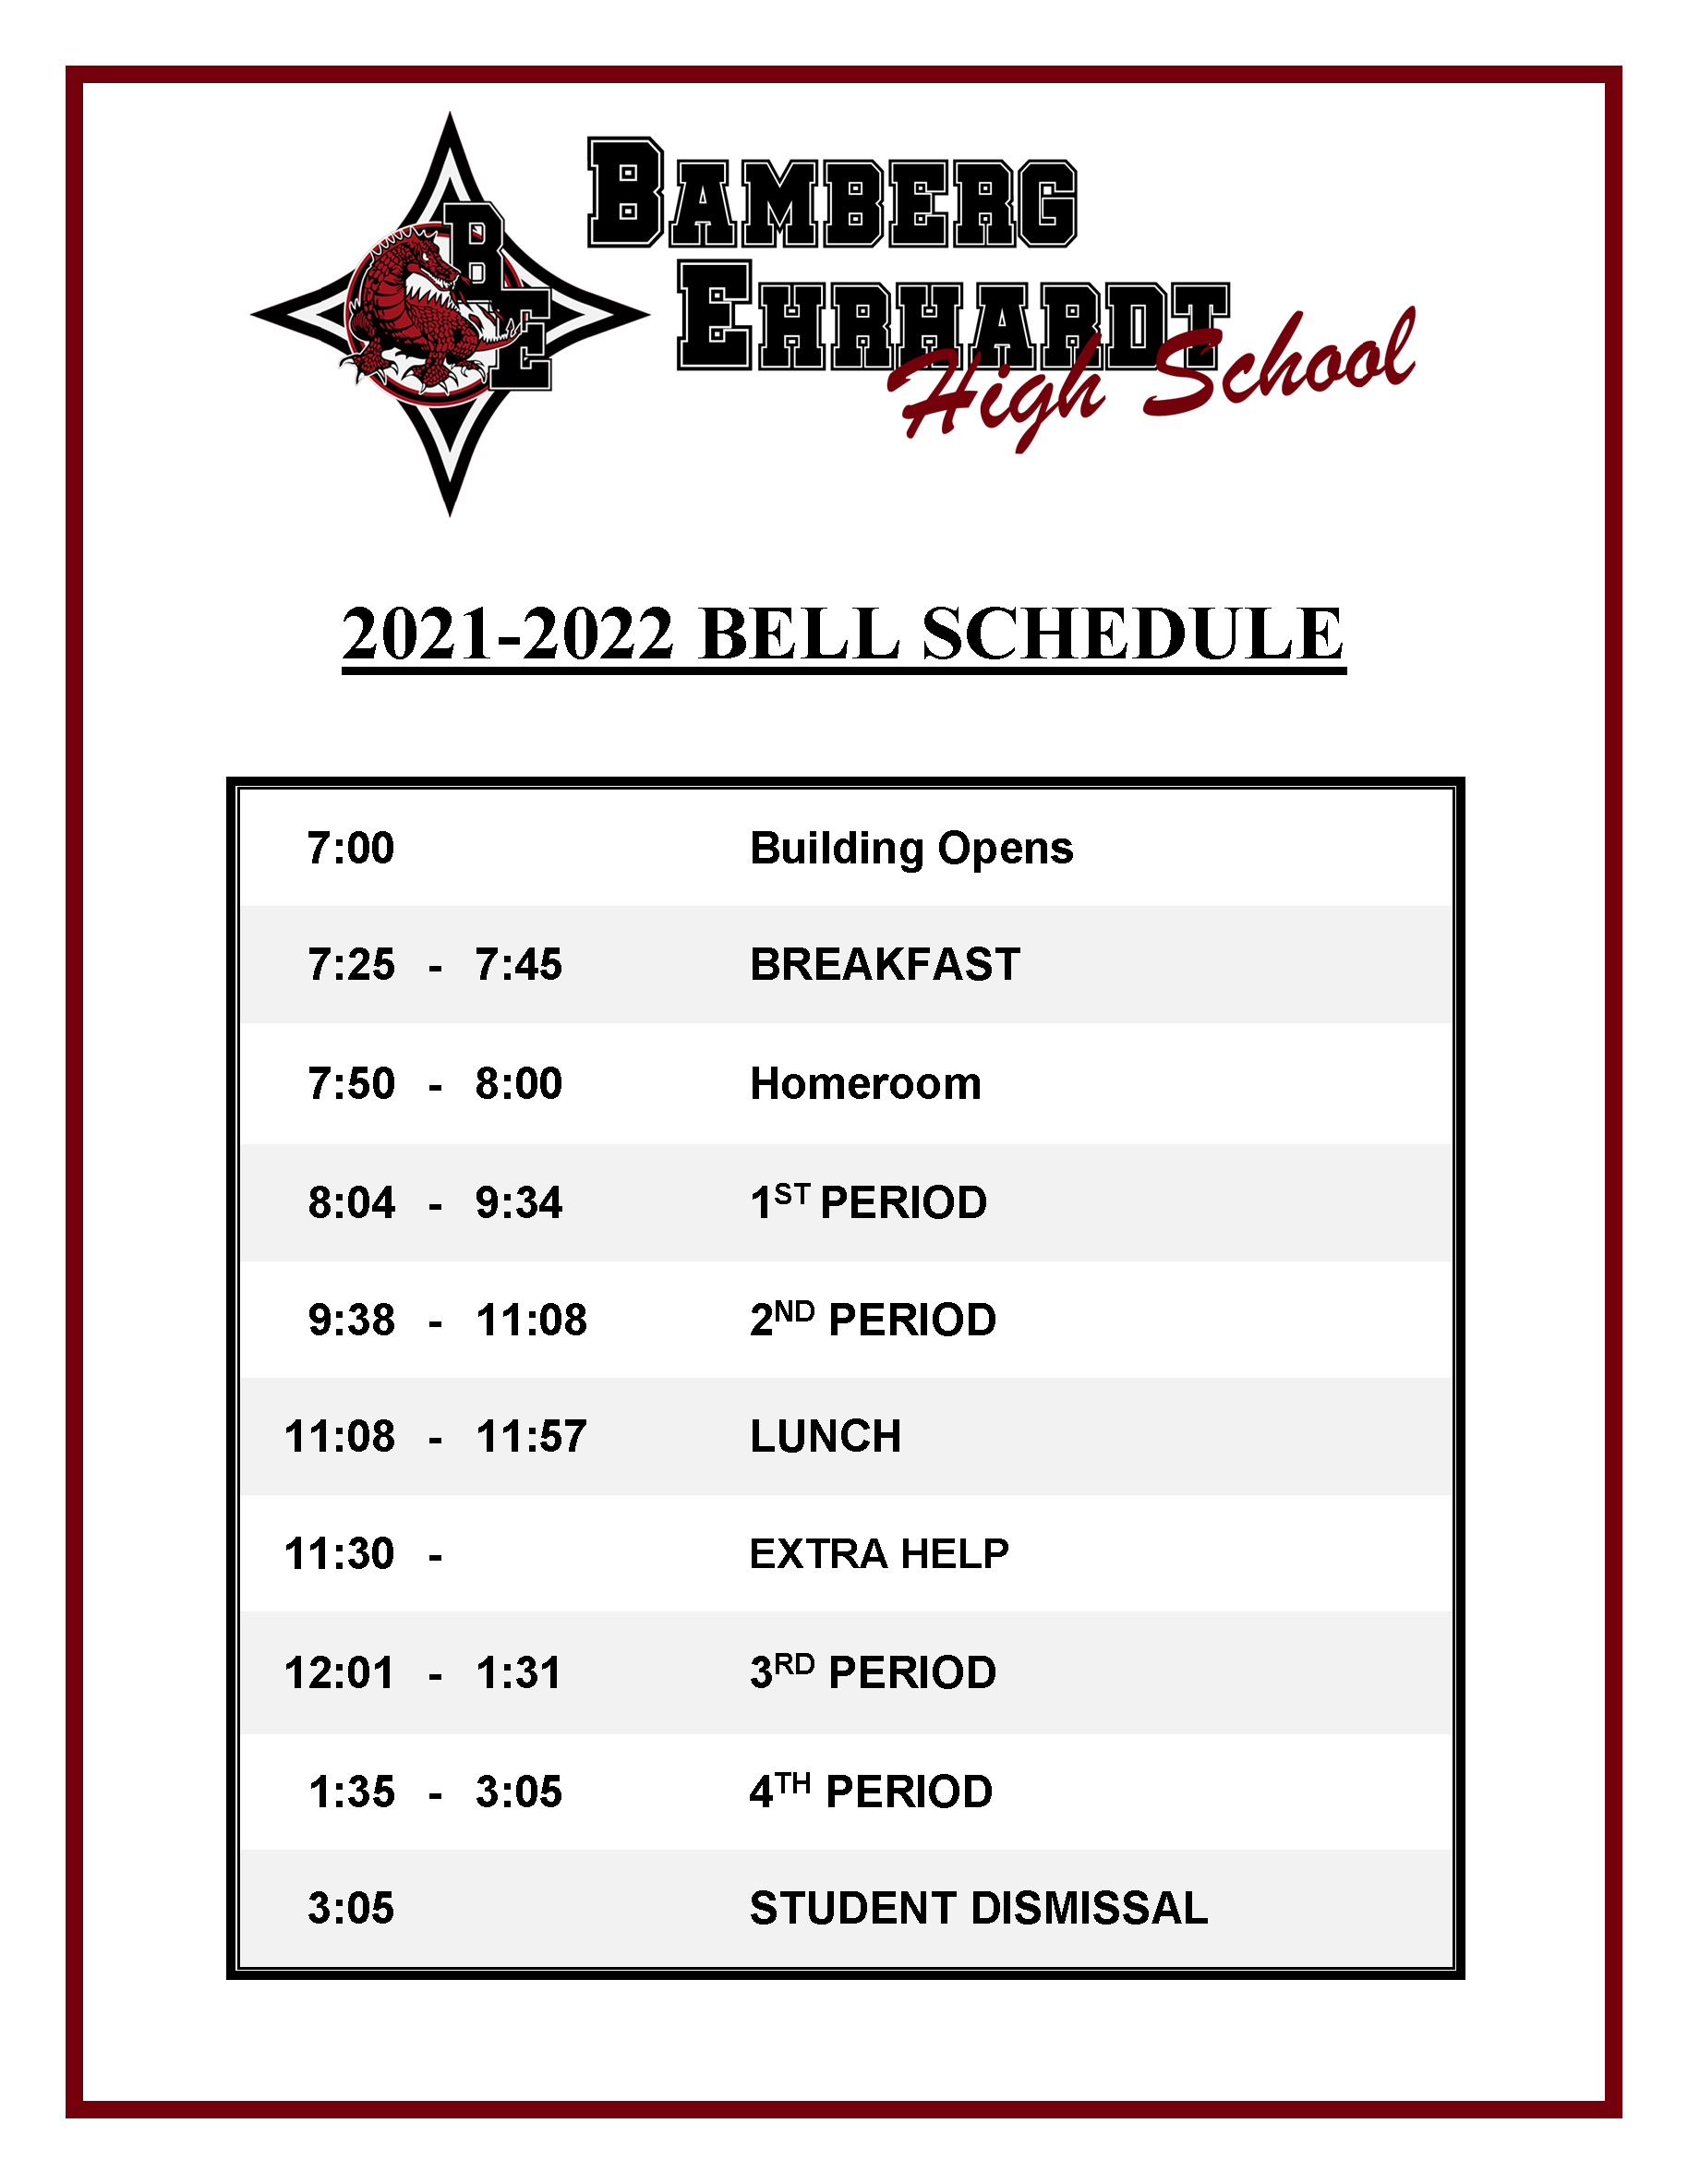 Bell Schedule Image, Downloadable version available below